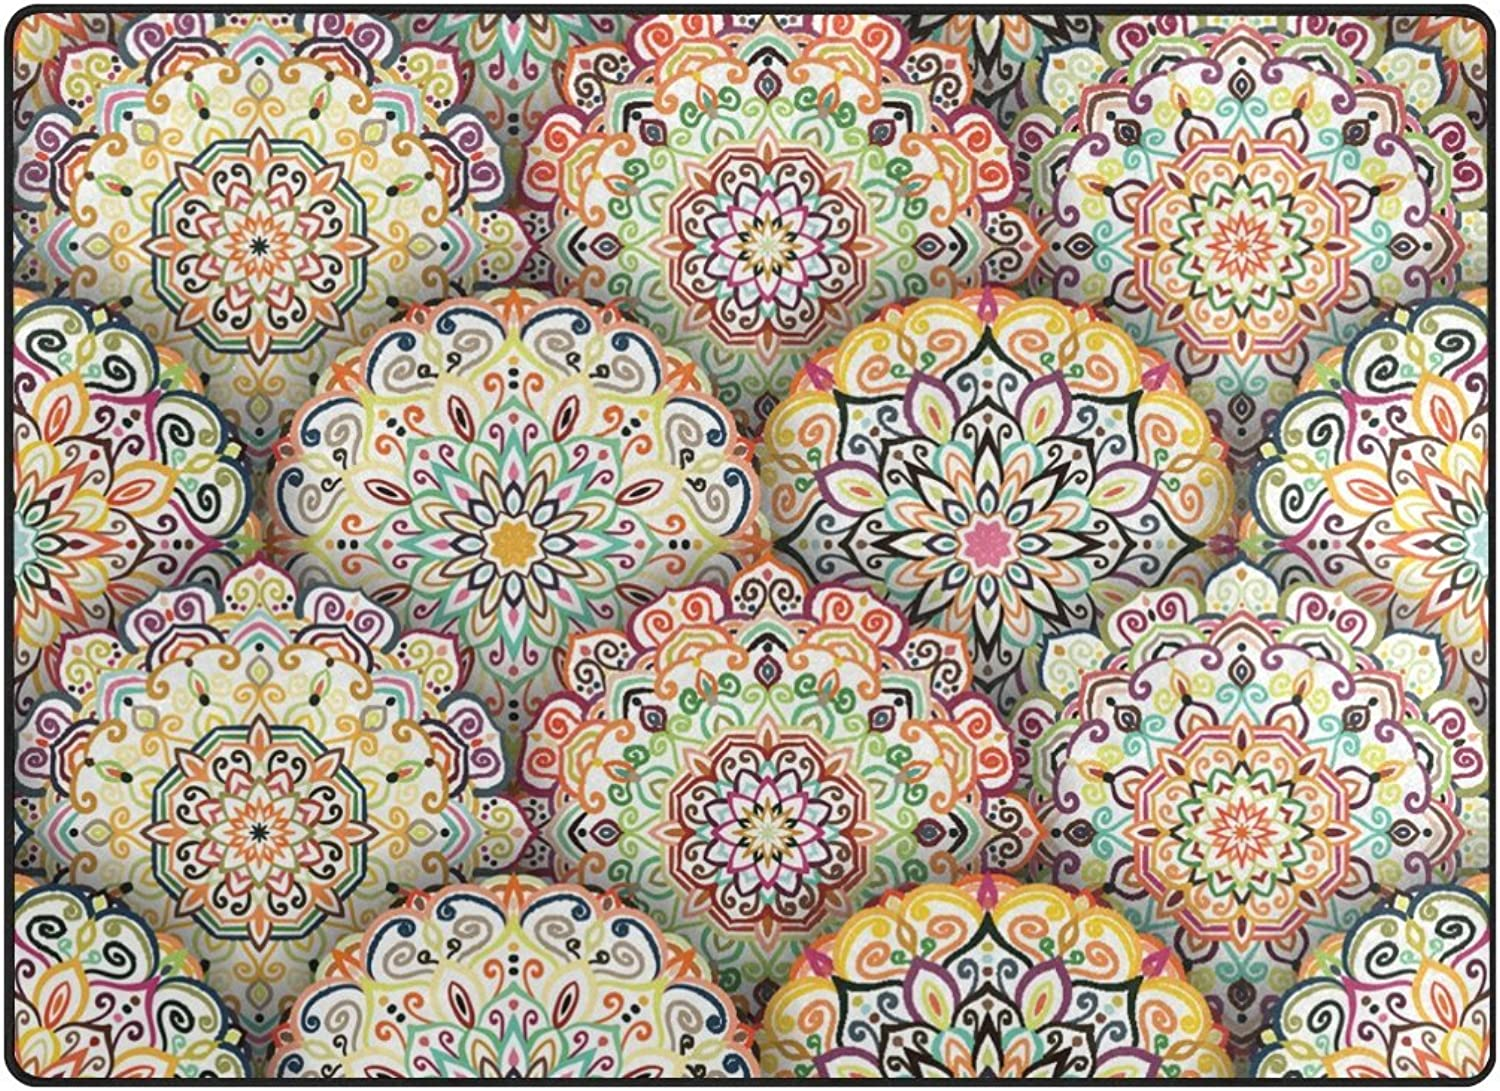 SUABO 80 x 58 inches Area Rug Non-Slip Floor Mat Mandala Pattern Printed Doormats for Living Room Bedroom